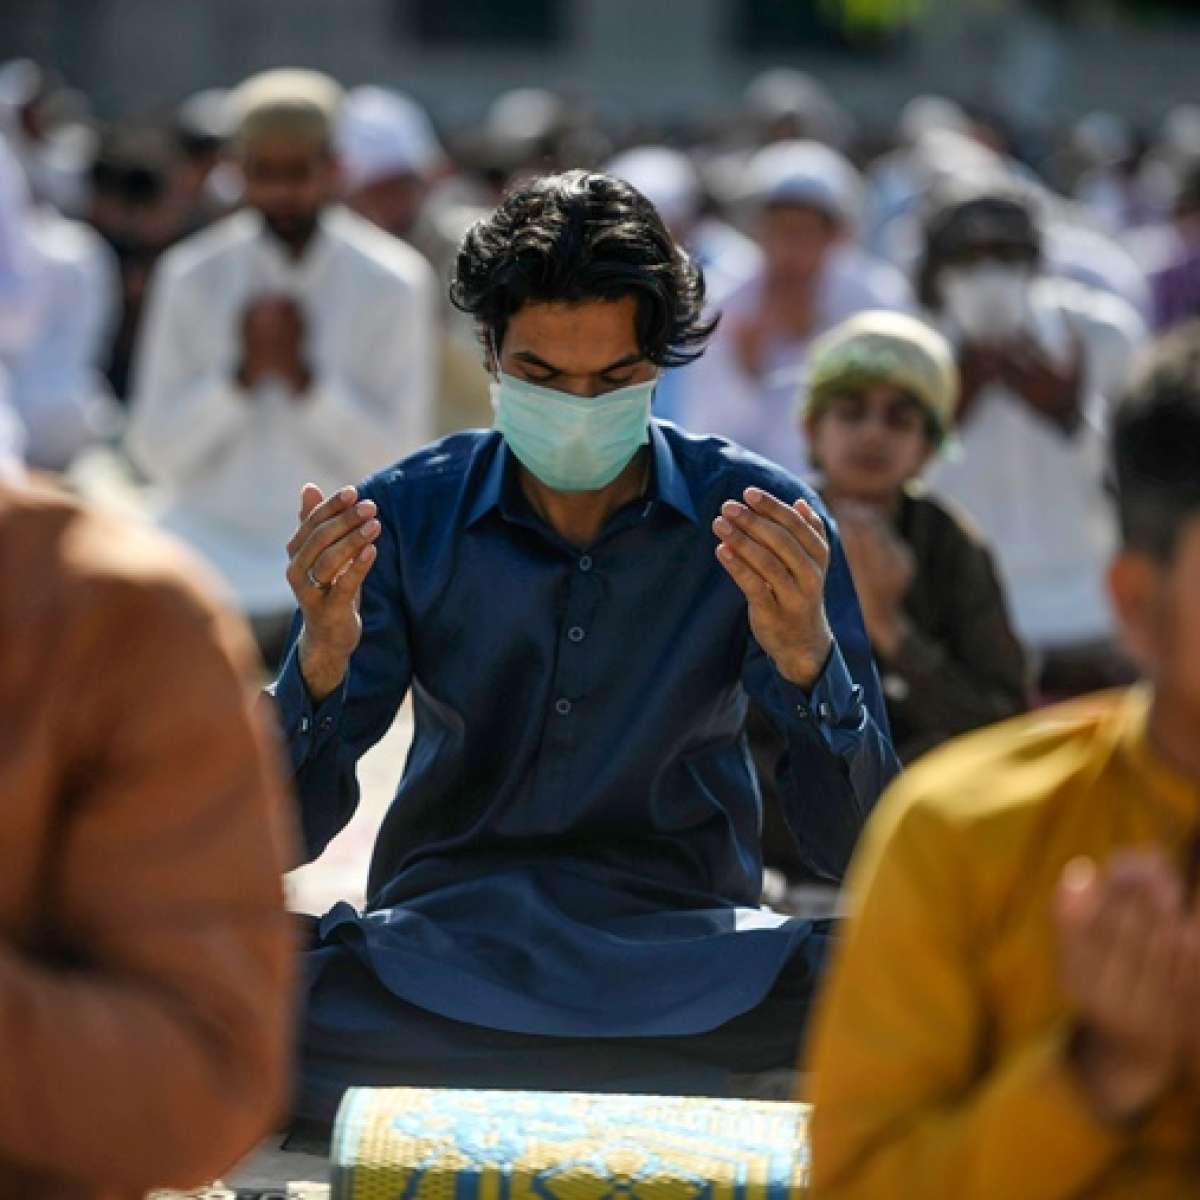 Eid-ul-Fitr 2020: Eid date, moon sight timing in India; all you need to know